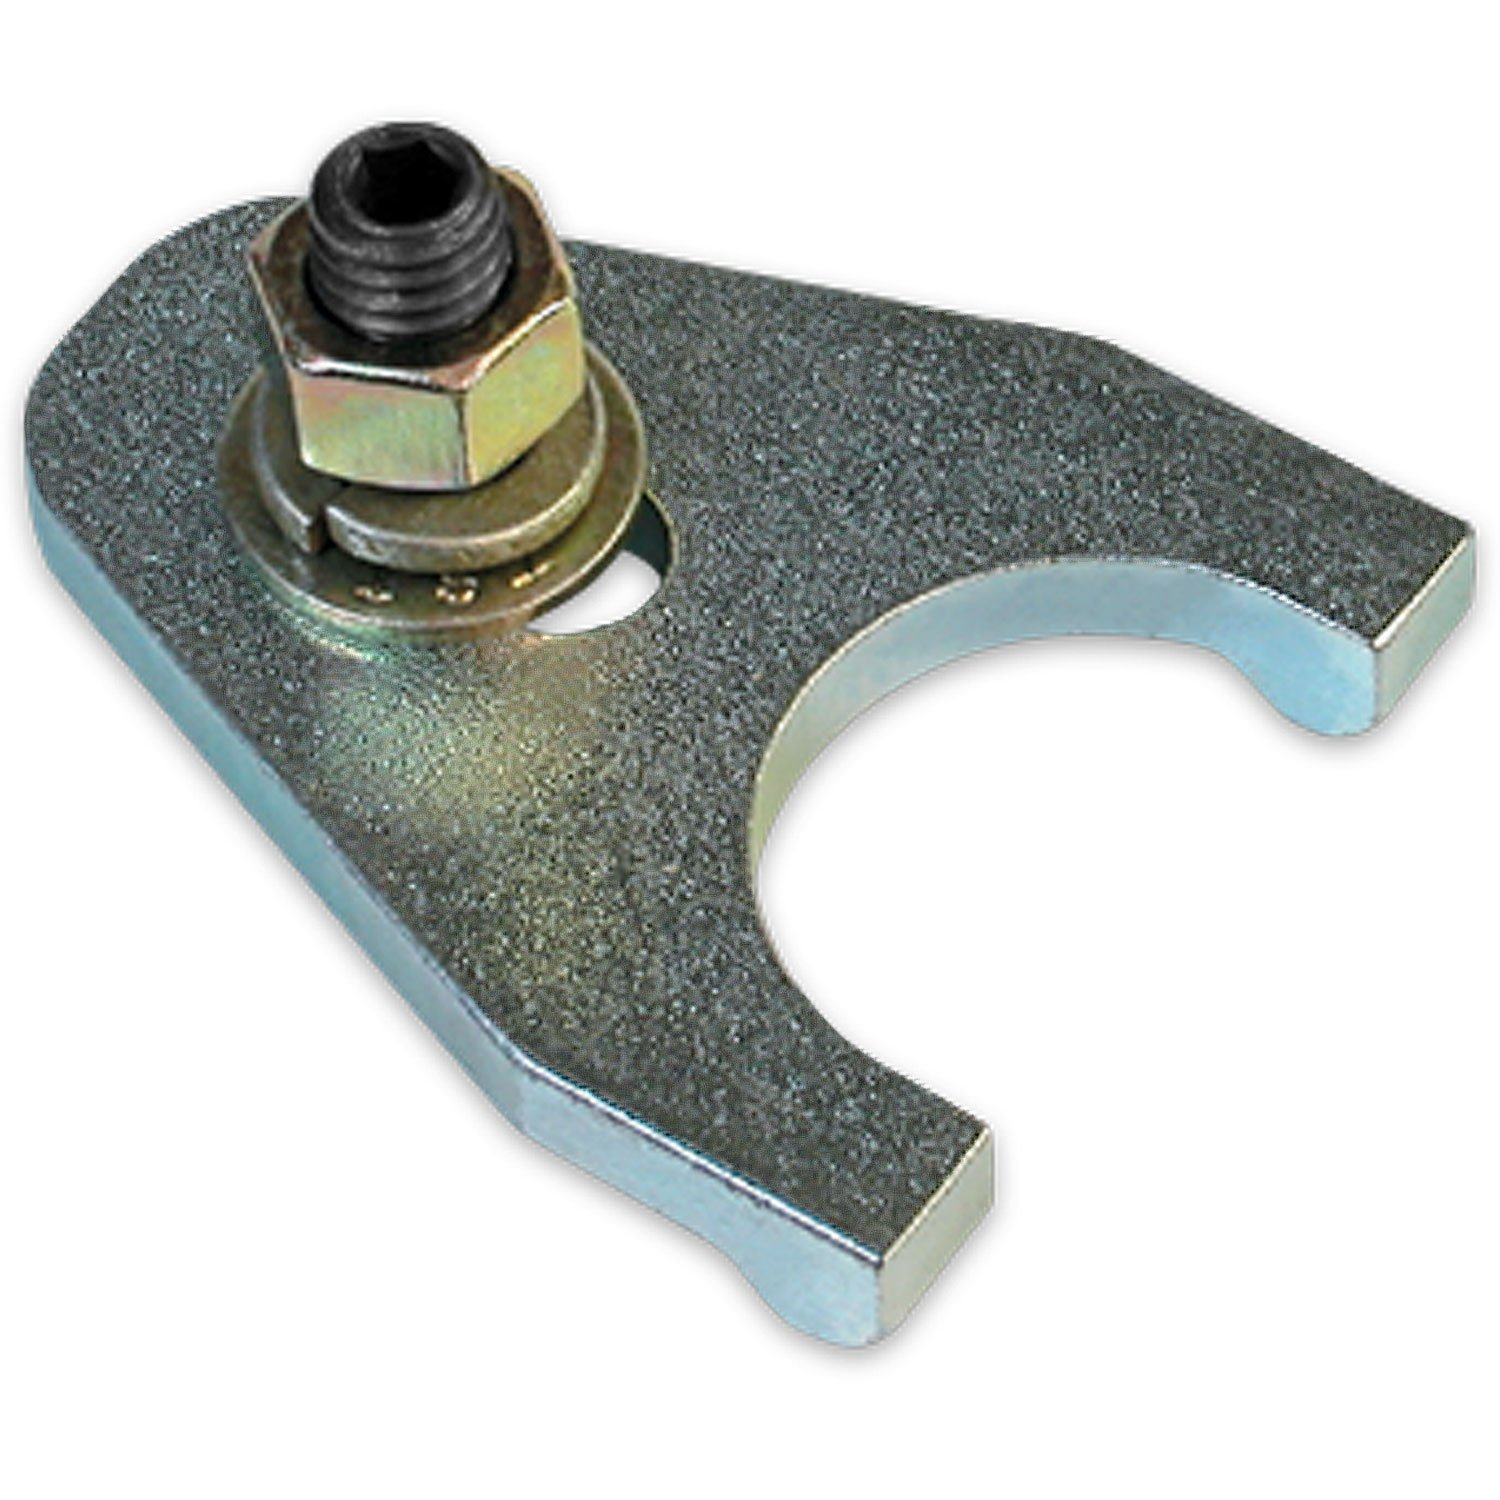 Chevy Billet Distributor Hold Down Clamp